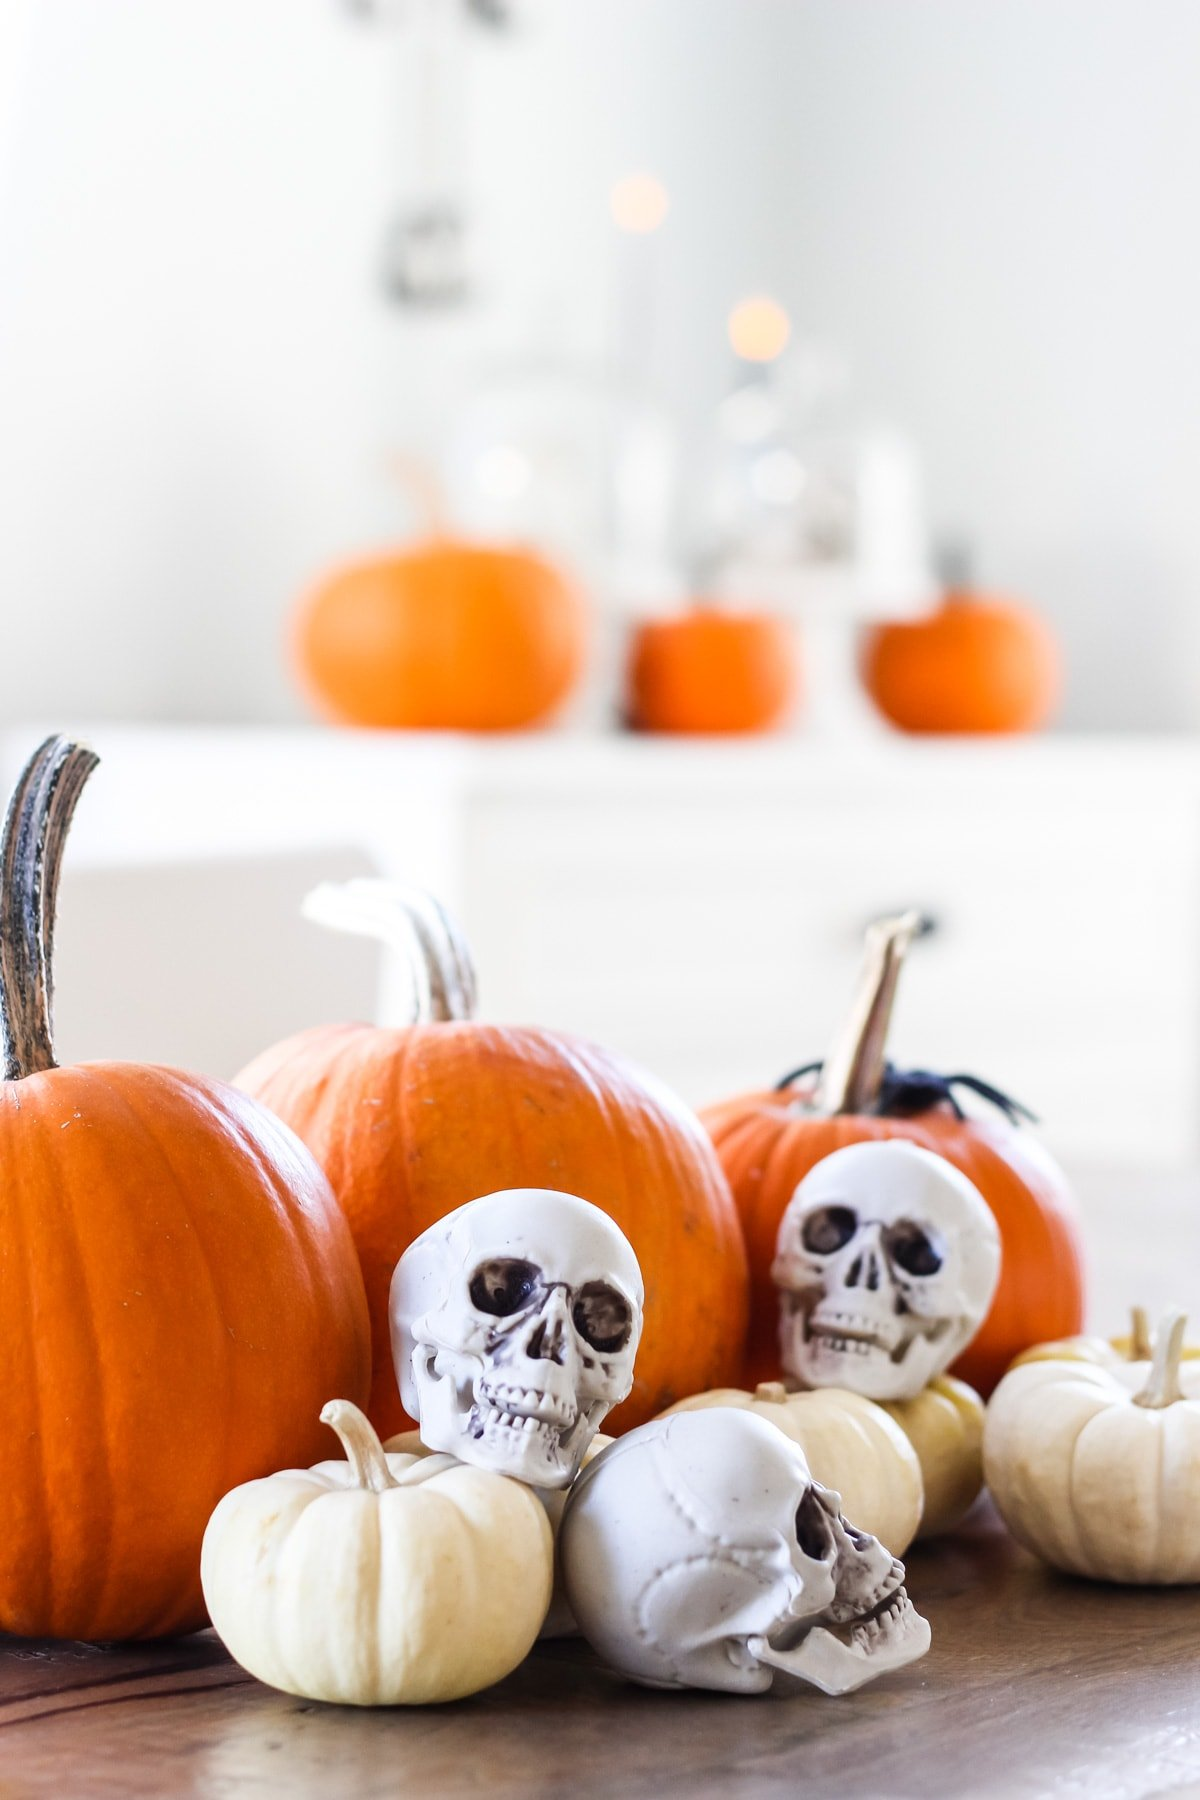 on a wooden table are orange pumpkins and mini skulls